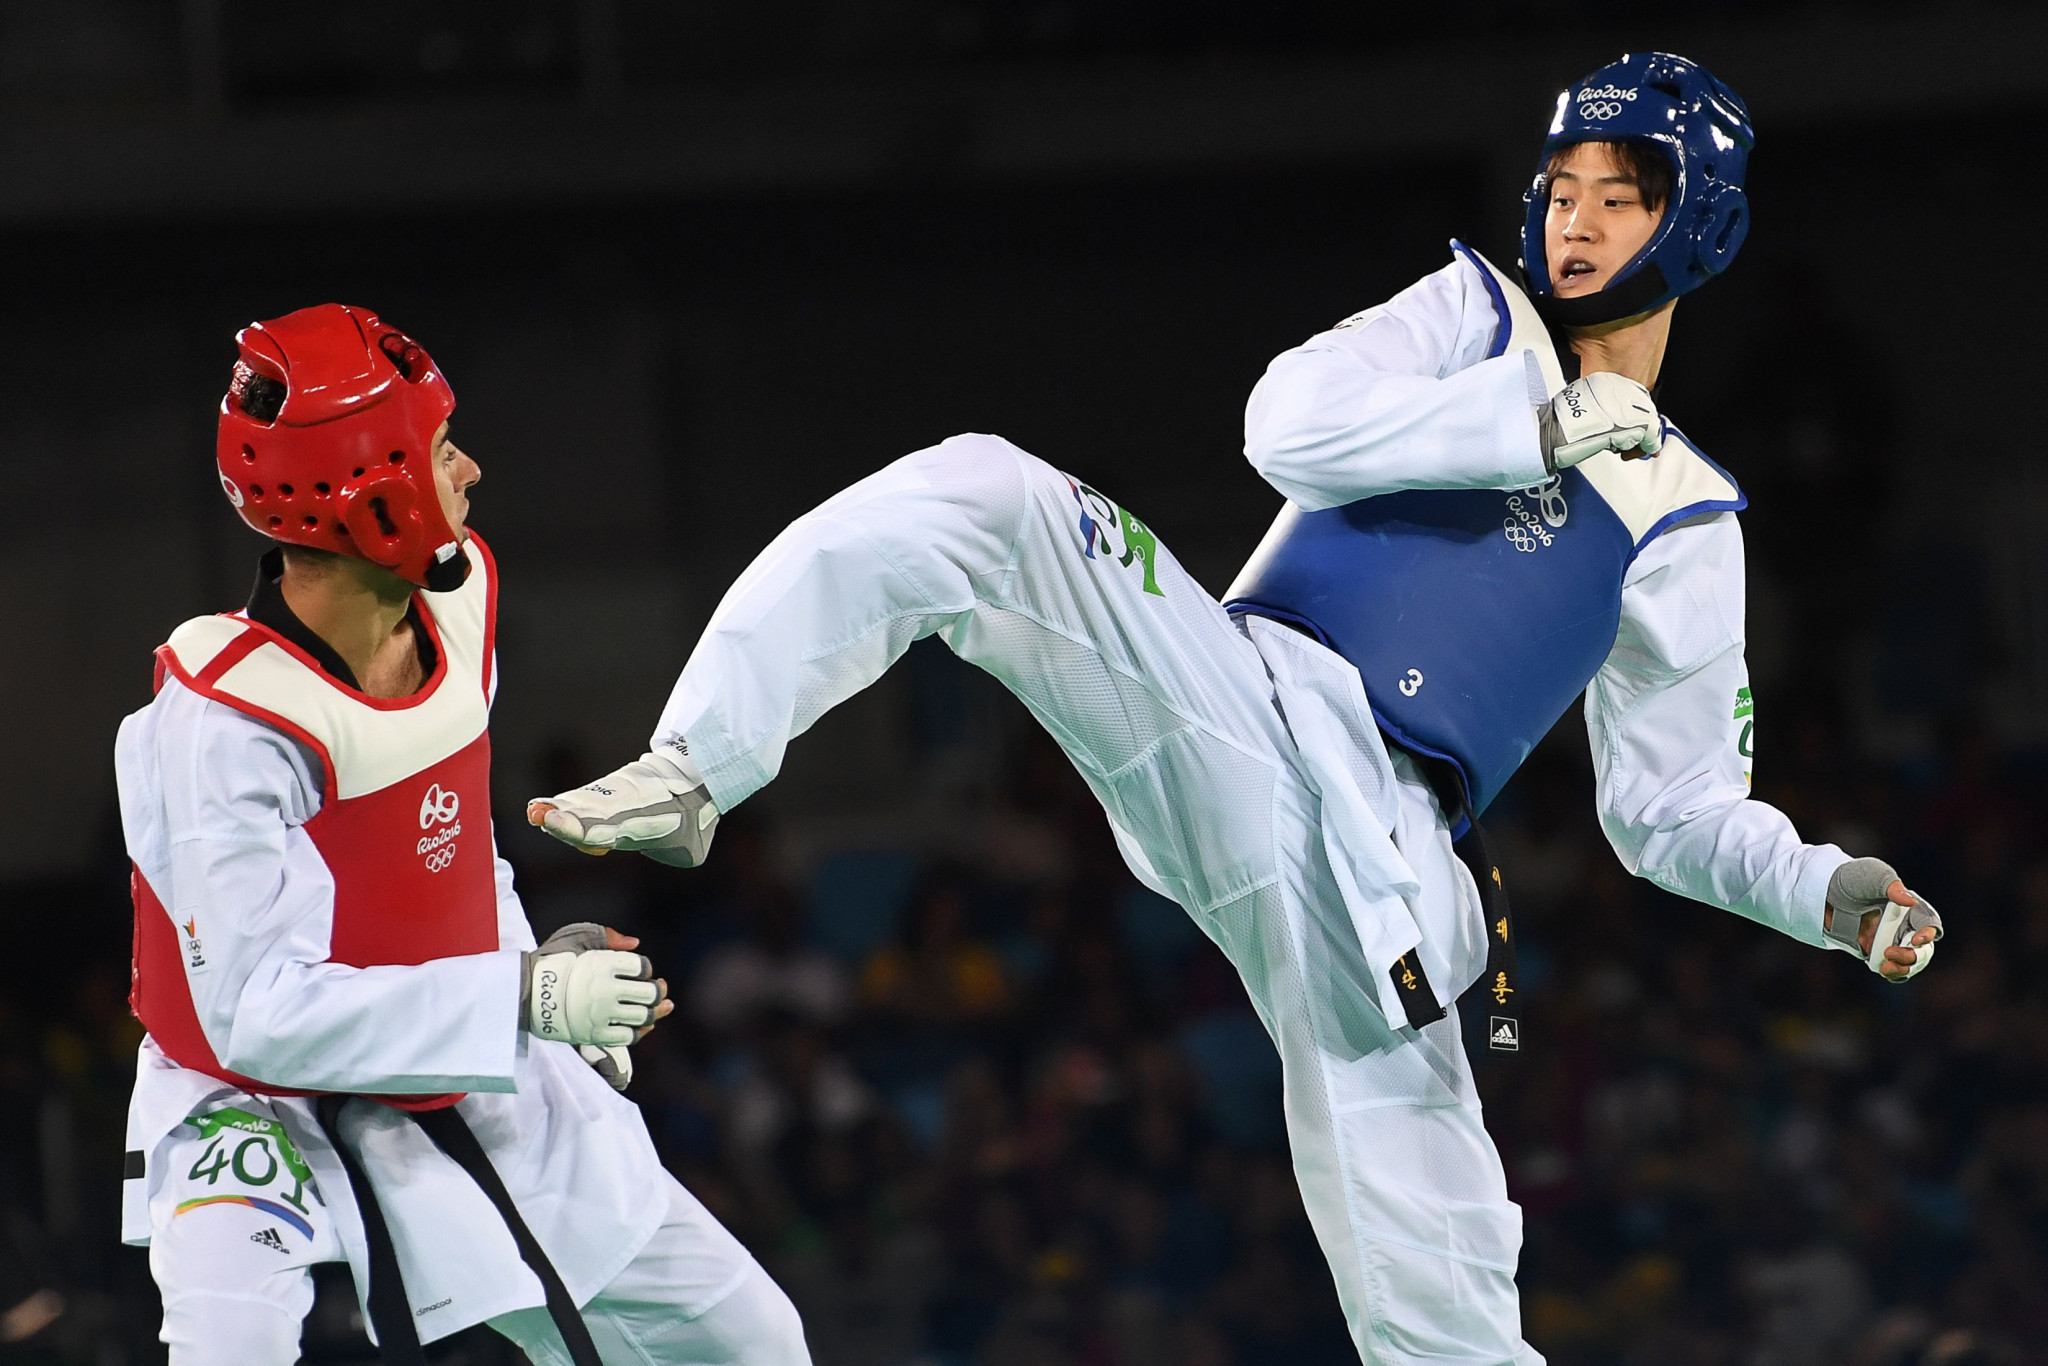 South Korea's Lee Dae-hoon is among a number of high-profile athletes that will not be competing at the event ©World Taekwondo